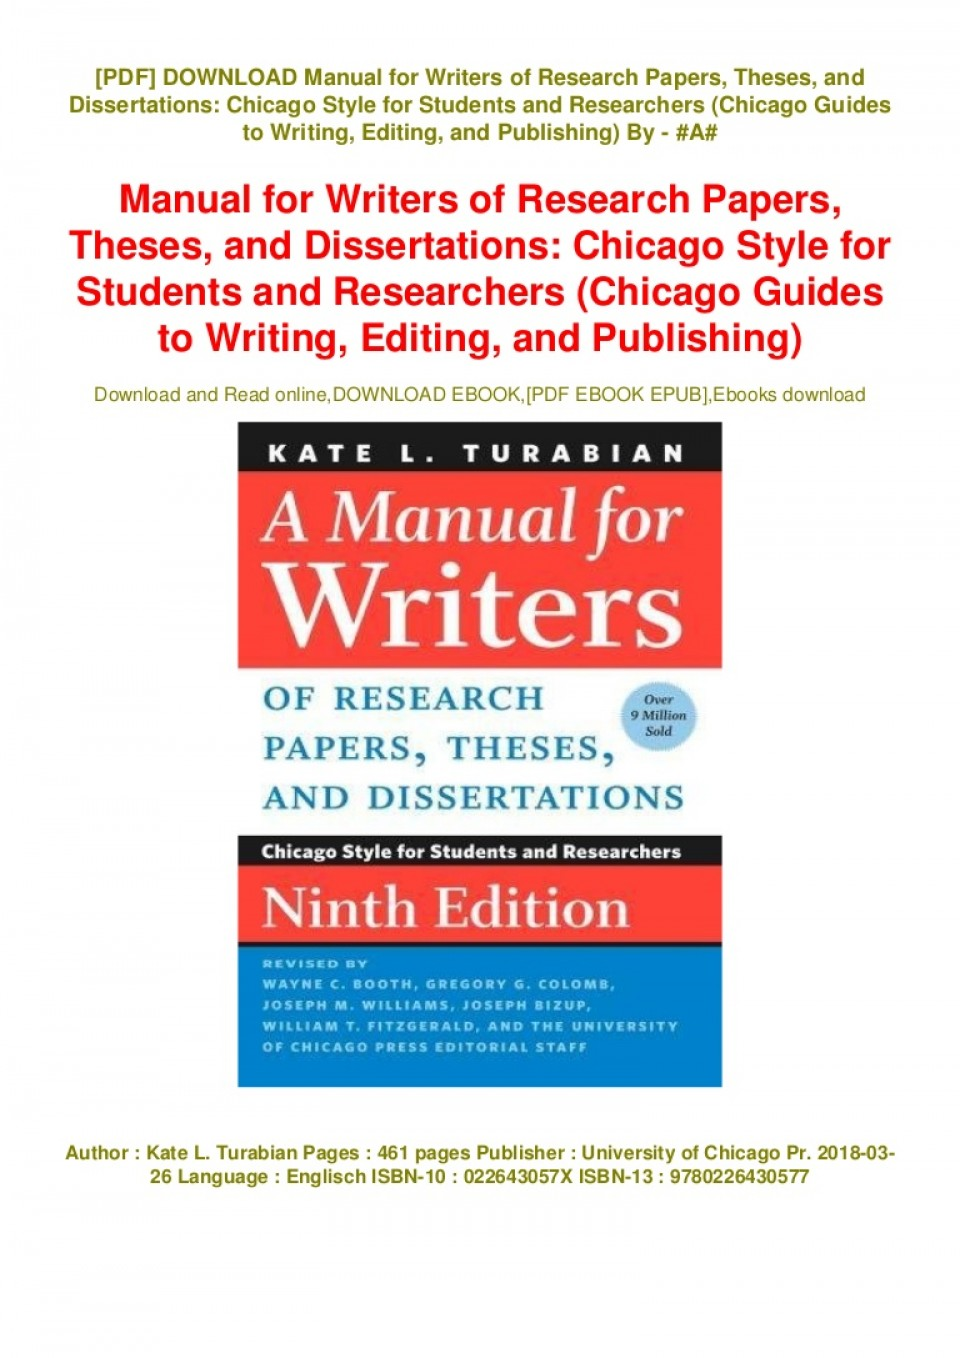 010 Download Manual For Writers Of Research Papers Theses Andations Chicago Style Students Thumbnail Unbelievable A And Dissertations Ebook 960